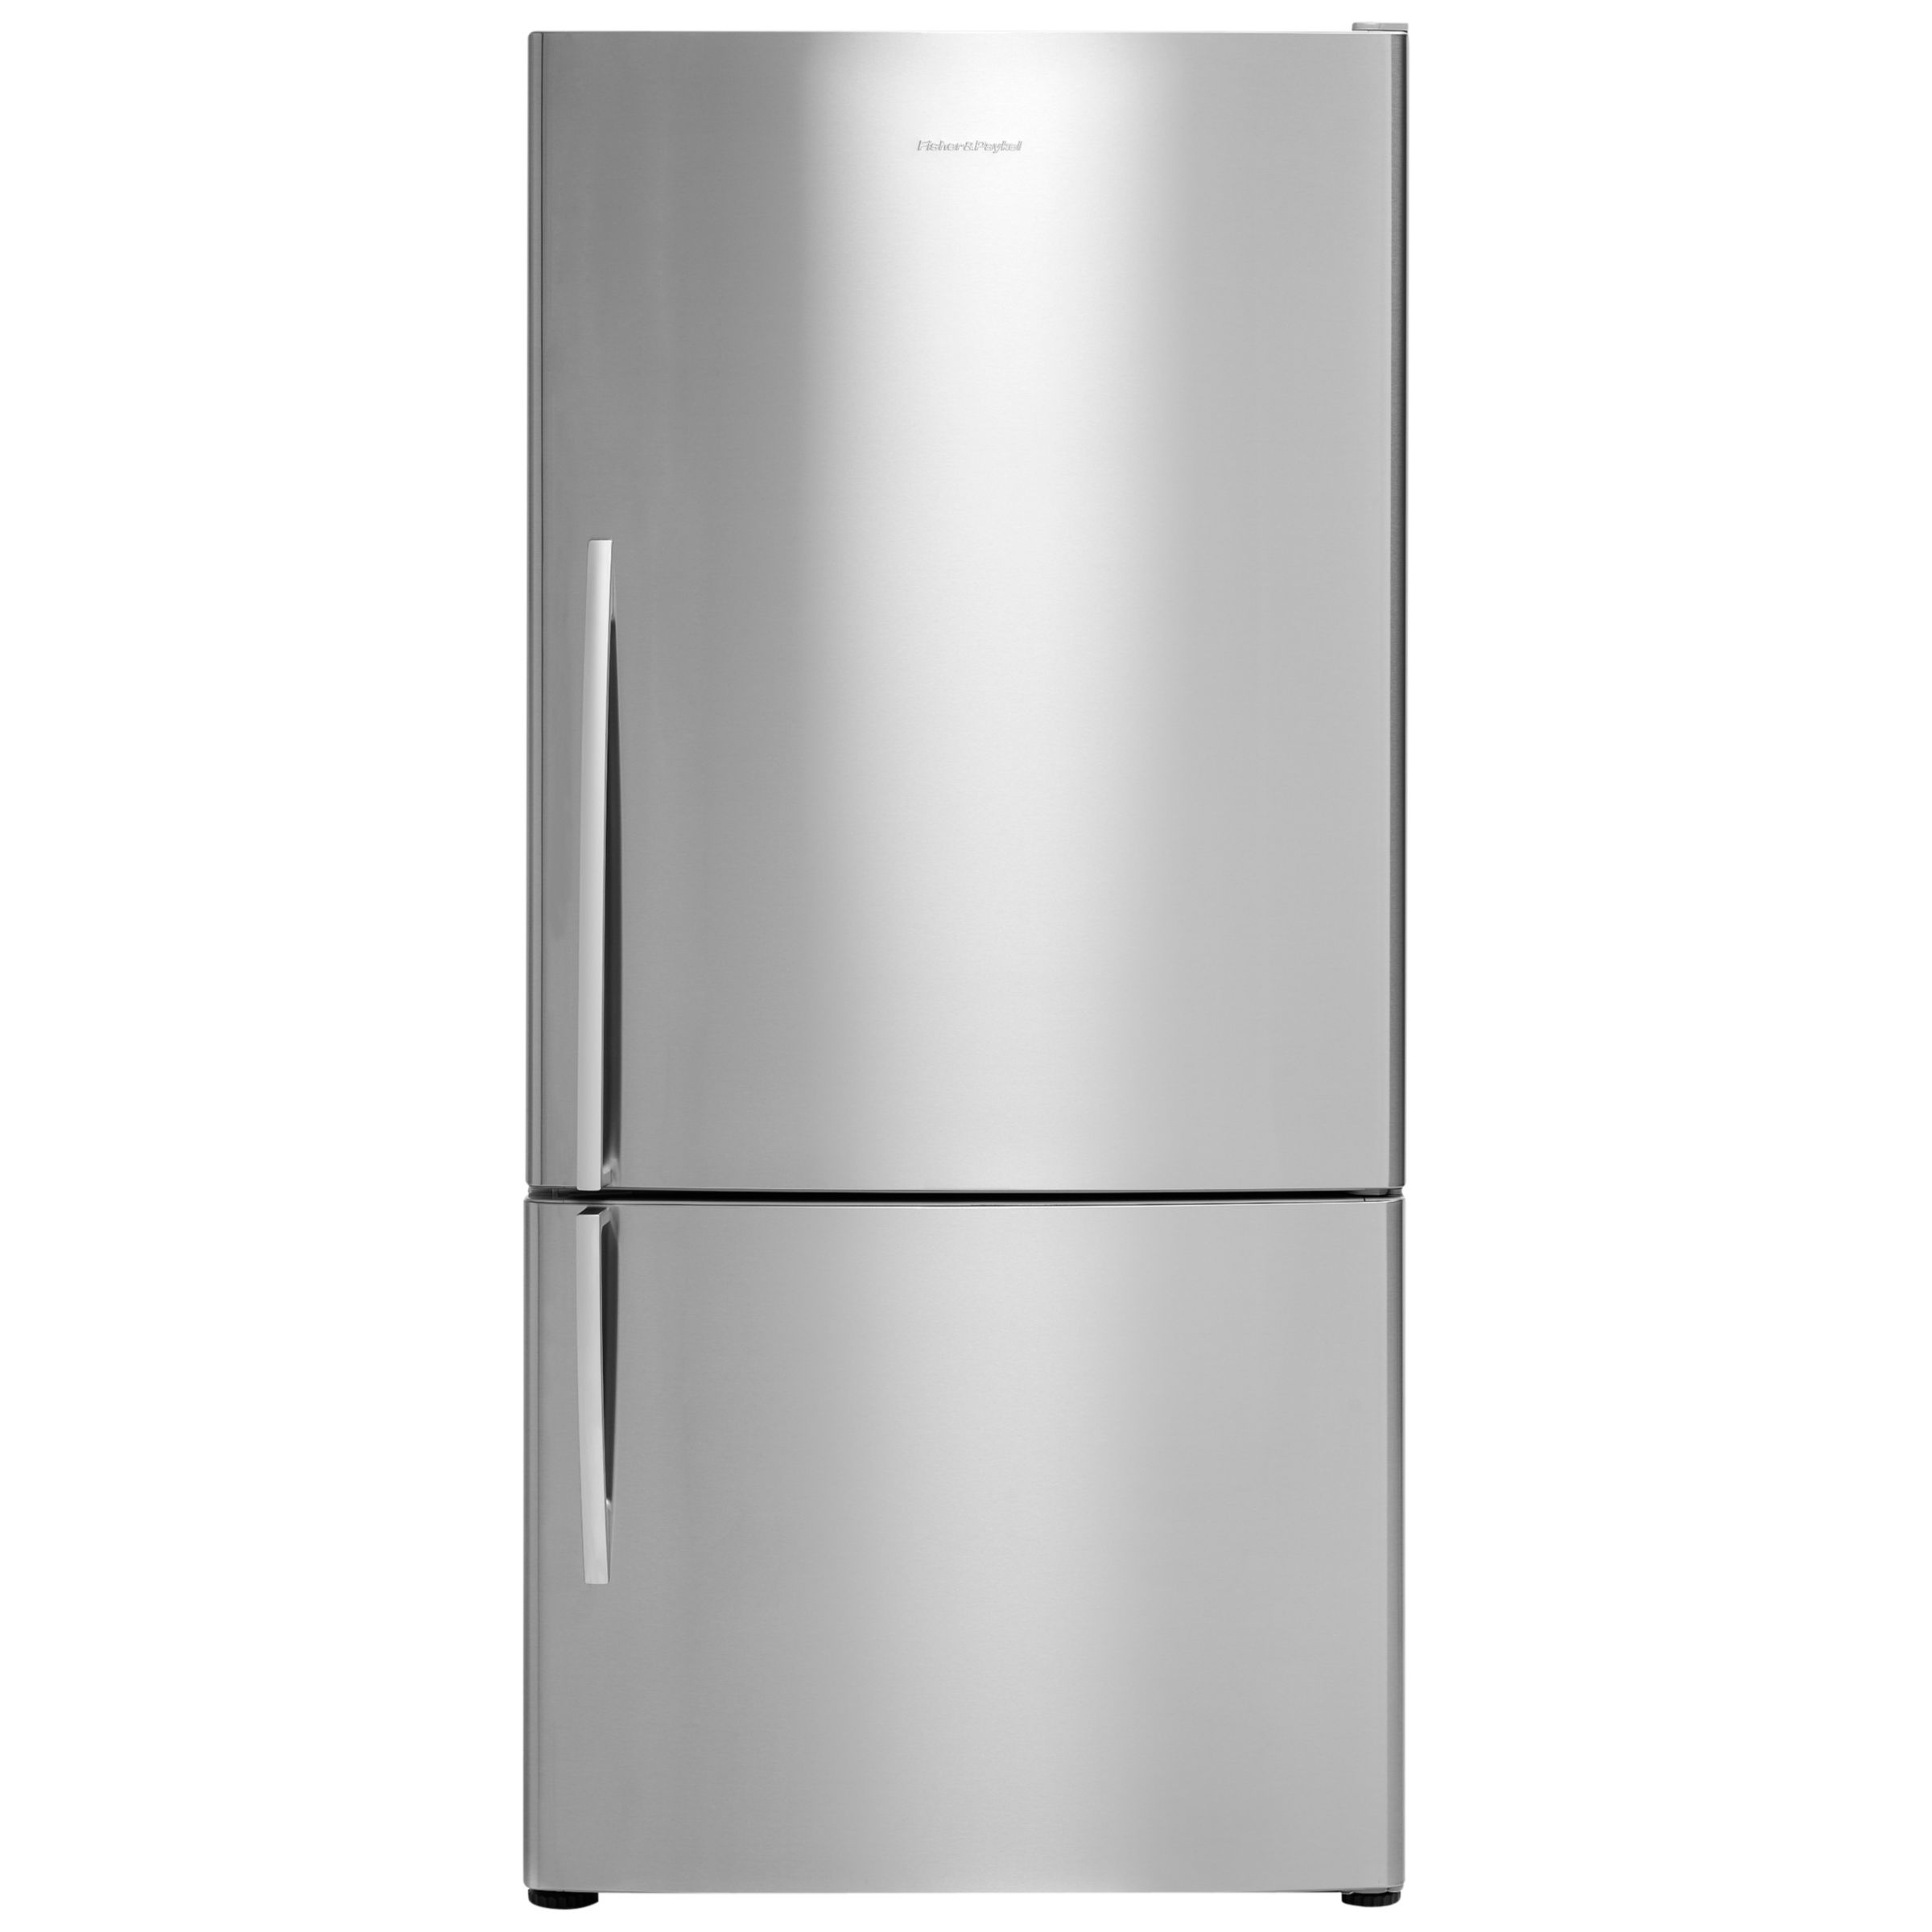 Fisher & Paykel Fisher & Paykel E402BRX4 Fridge Freezer, A+ Energy Rating, 64cm Wide, Stainless Steel